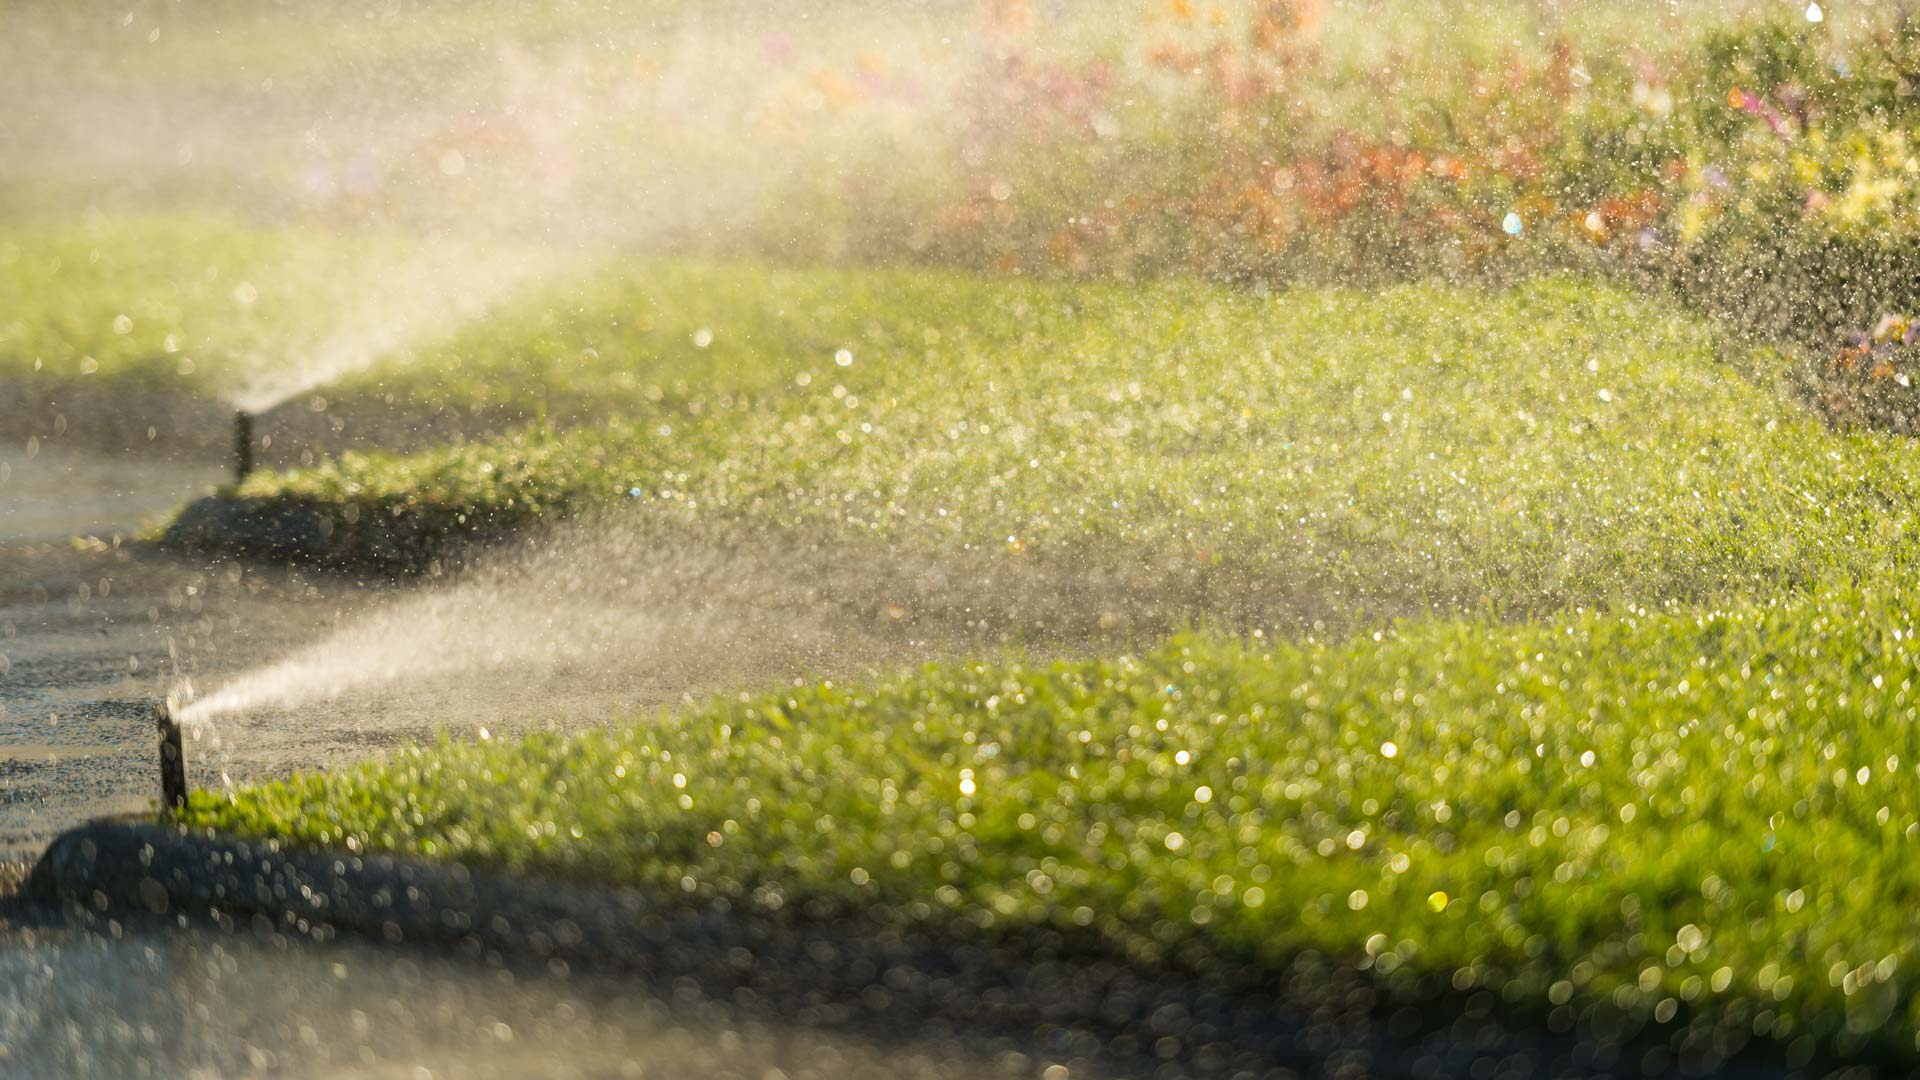 Close up of our clients irrigation system watering the lawn.